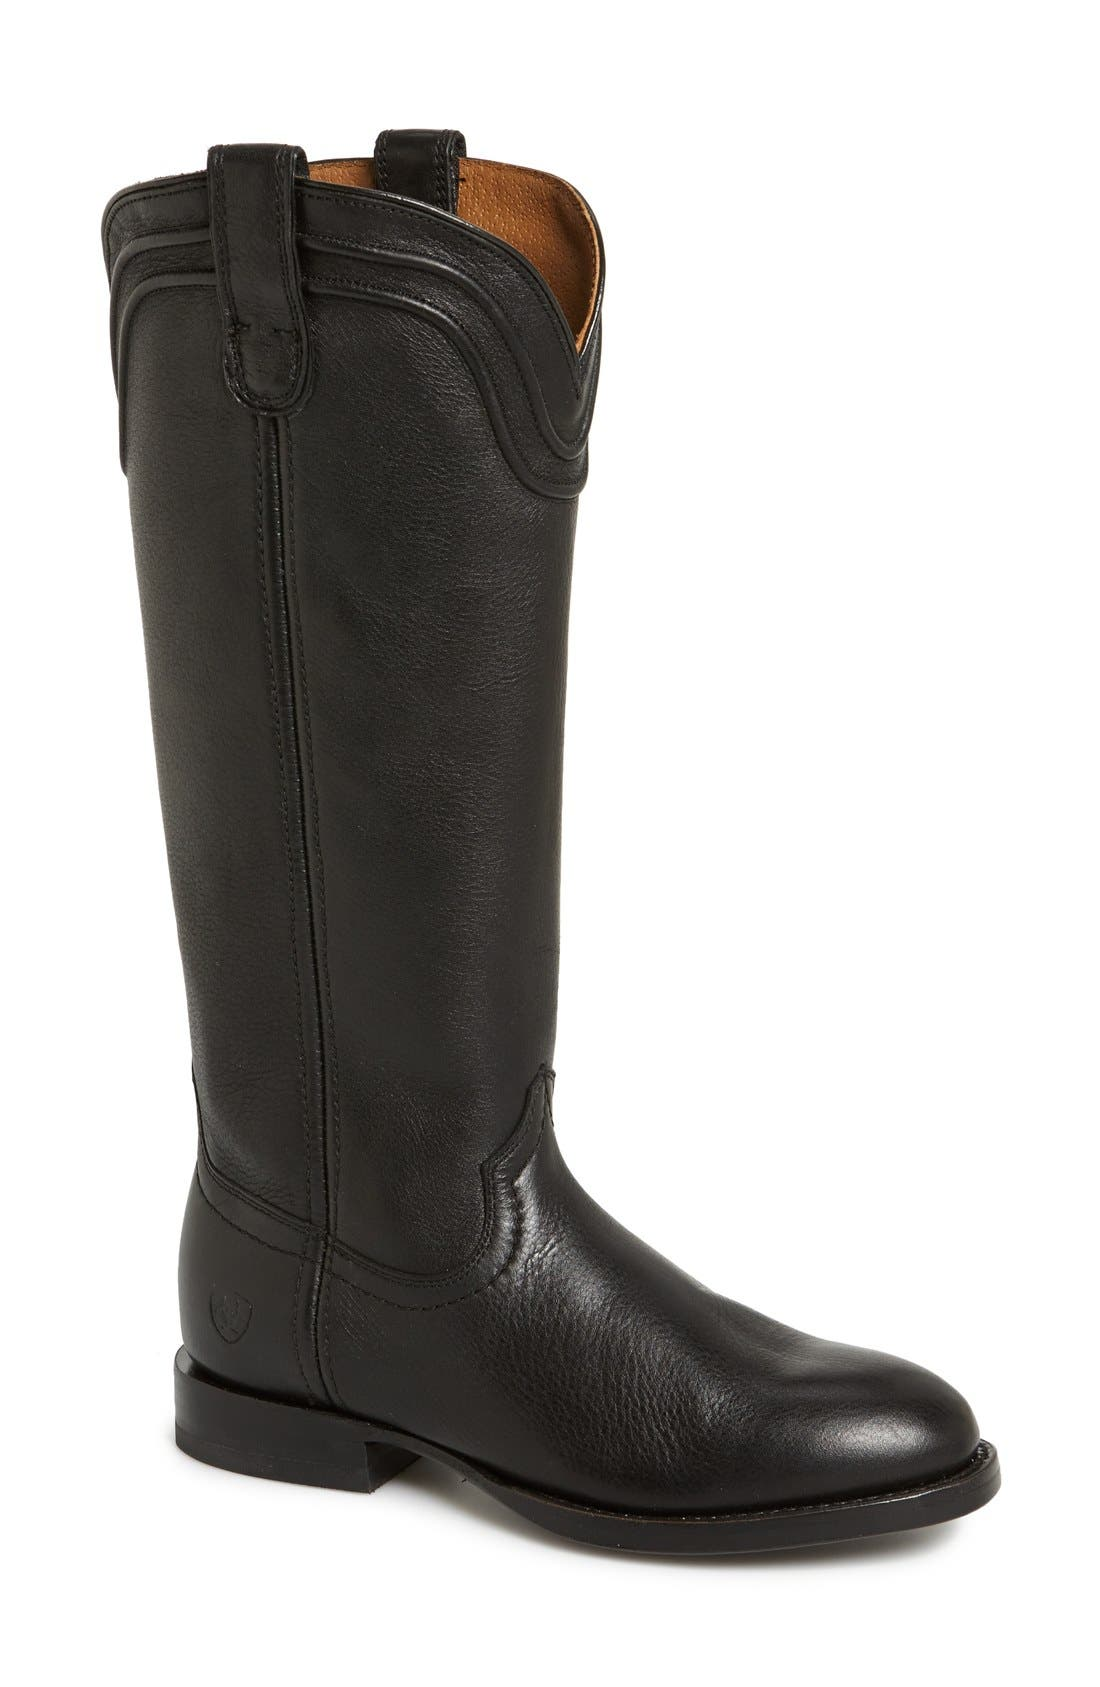 Alternate Image 1 Selected - Ariat 'About Town' Western Boot (Women)